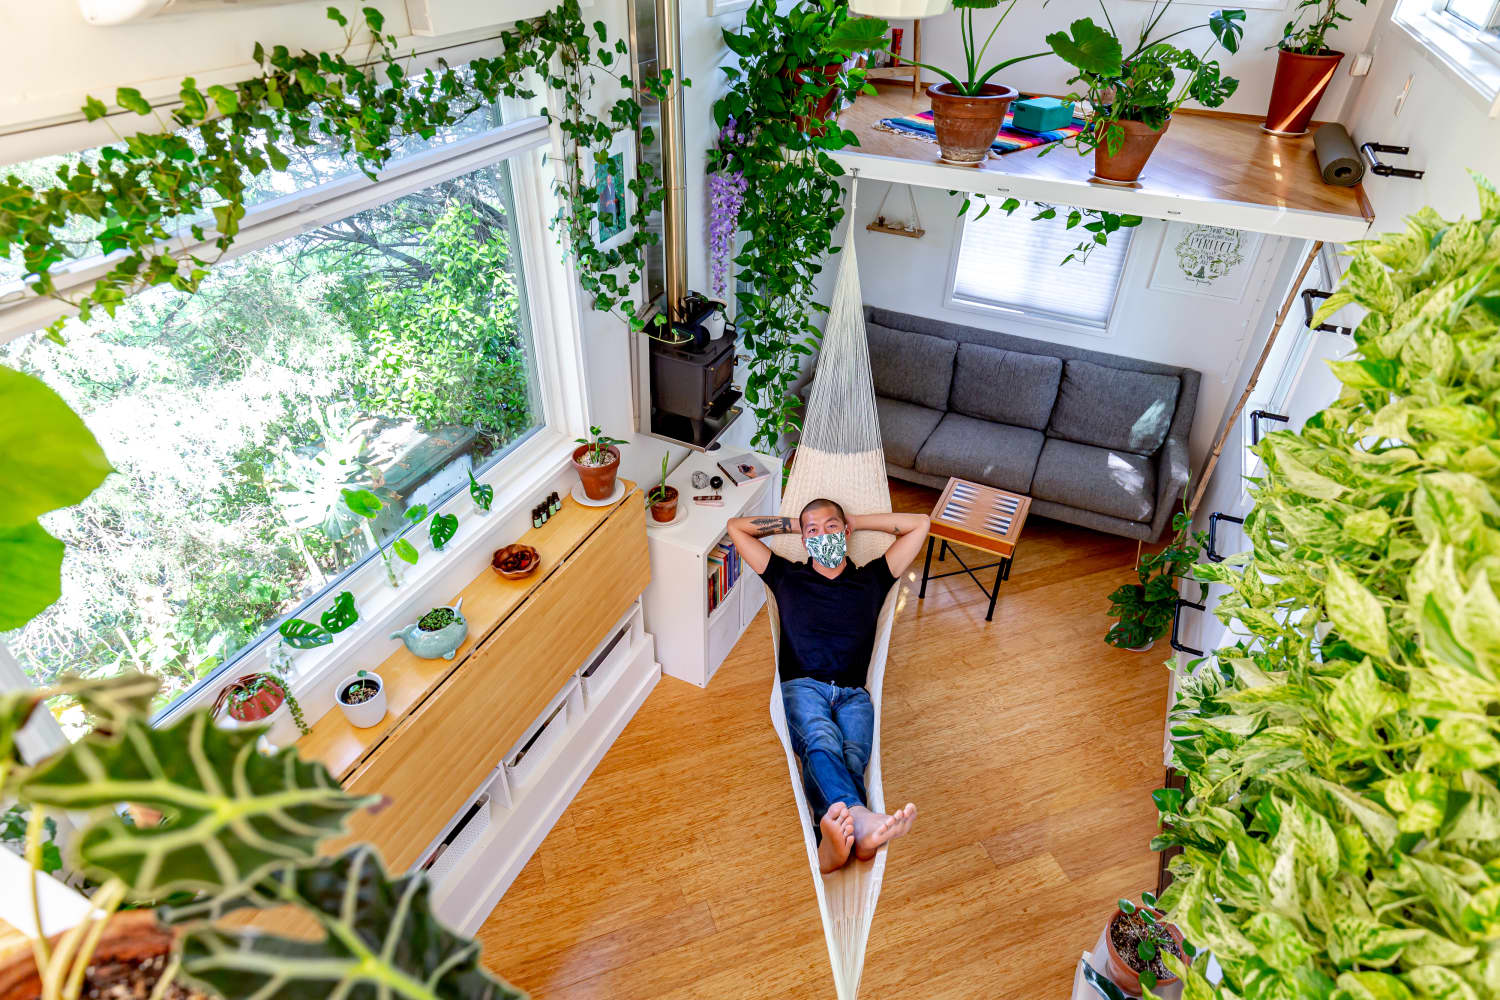 This 296-Square-Foot Tiny House Has Tons of Plants, over 14 Windows, a Hammock, and a Meditation Loft